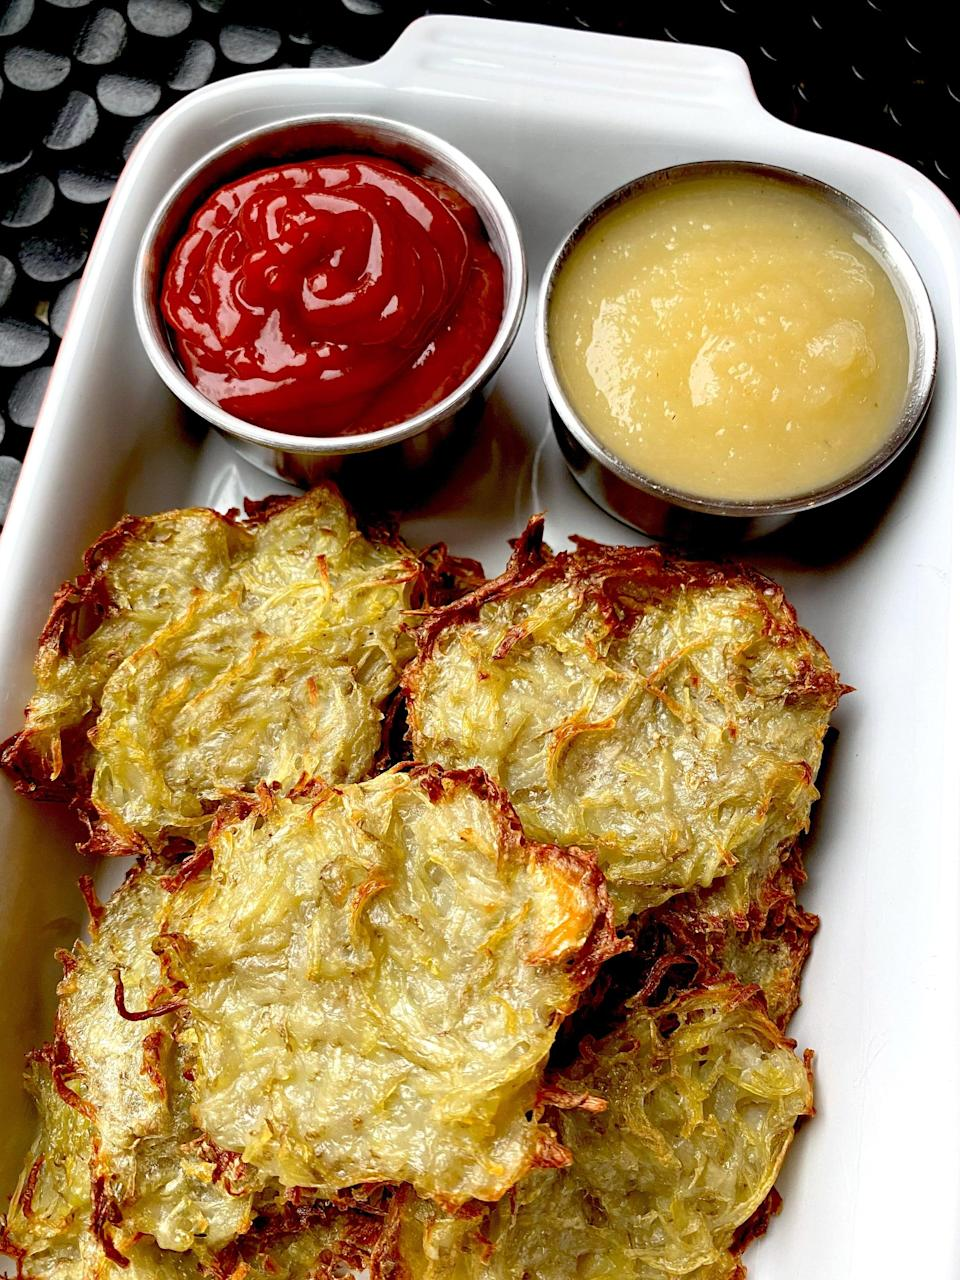 """<p>While the whole point of eating potato latkes to celebrate Hanukkah is that they're fried in oil - to symbolize how the oil burned for eight days - there's a healthier option! </p> <p><strong>Get the recipe:</strong> <a href=""""https://www.popsugar.com/fitness/easy-air-fryer-potato-latke-recipe-48048309"""" class=""""link rapid-noclick-resp"""" rel=""""nofollow noopener"""" target=""""_blank"""" data-ylk=""""slk:air-fryer potato latkes"""">air-fryer potato latkes</a></p>"""